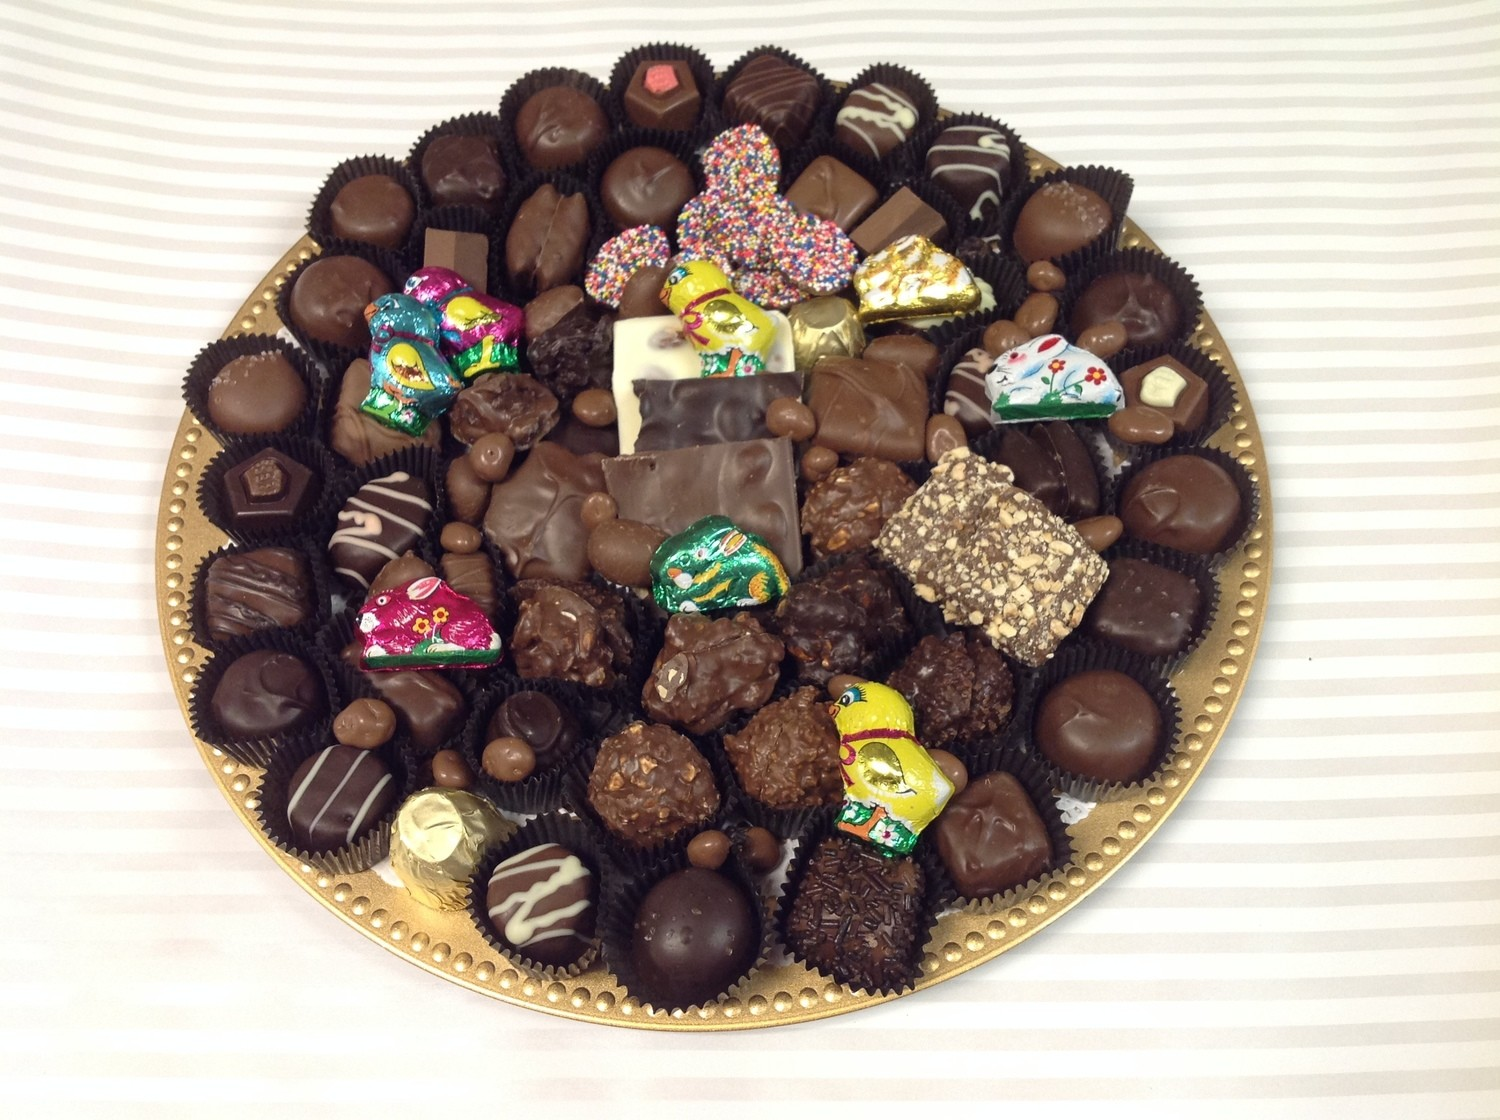 3 Pound Tray Easter Chocolate Tray.  An Assortment of Milk and Dark Chocolates, foiled solid chocolates for Easter.